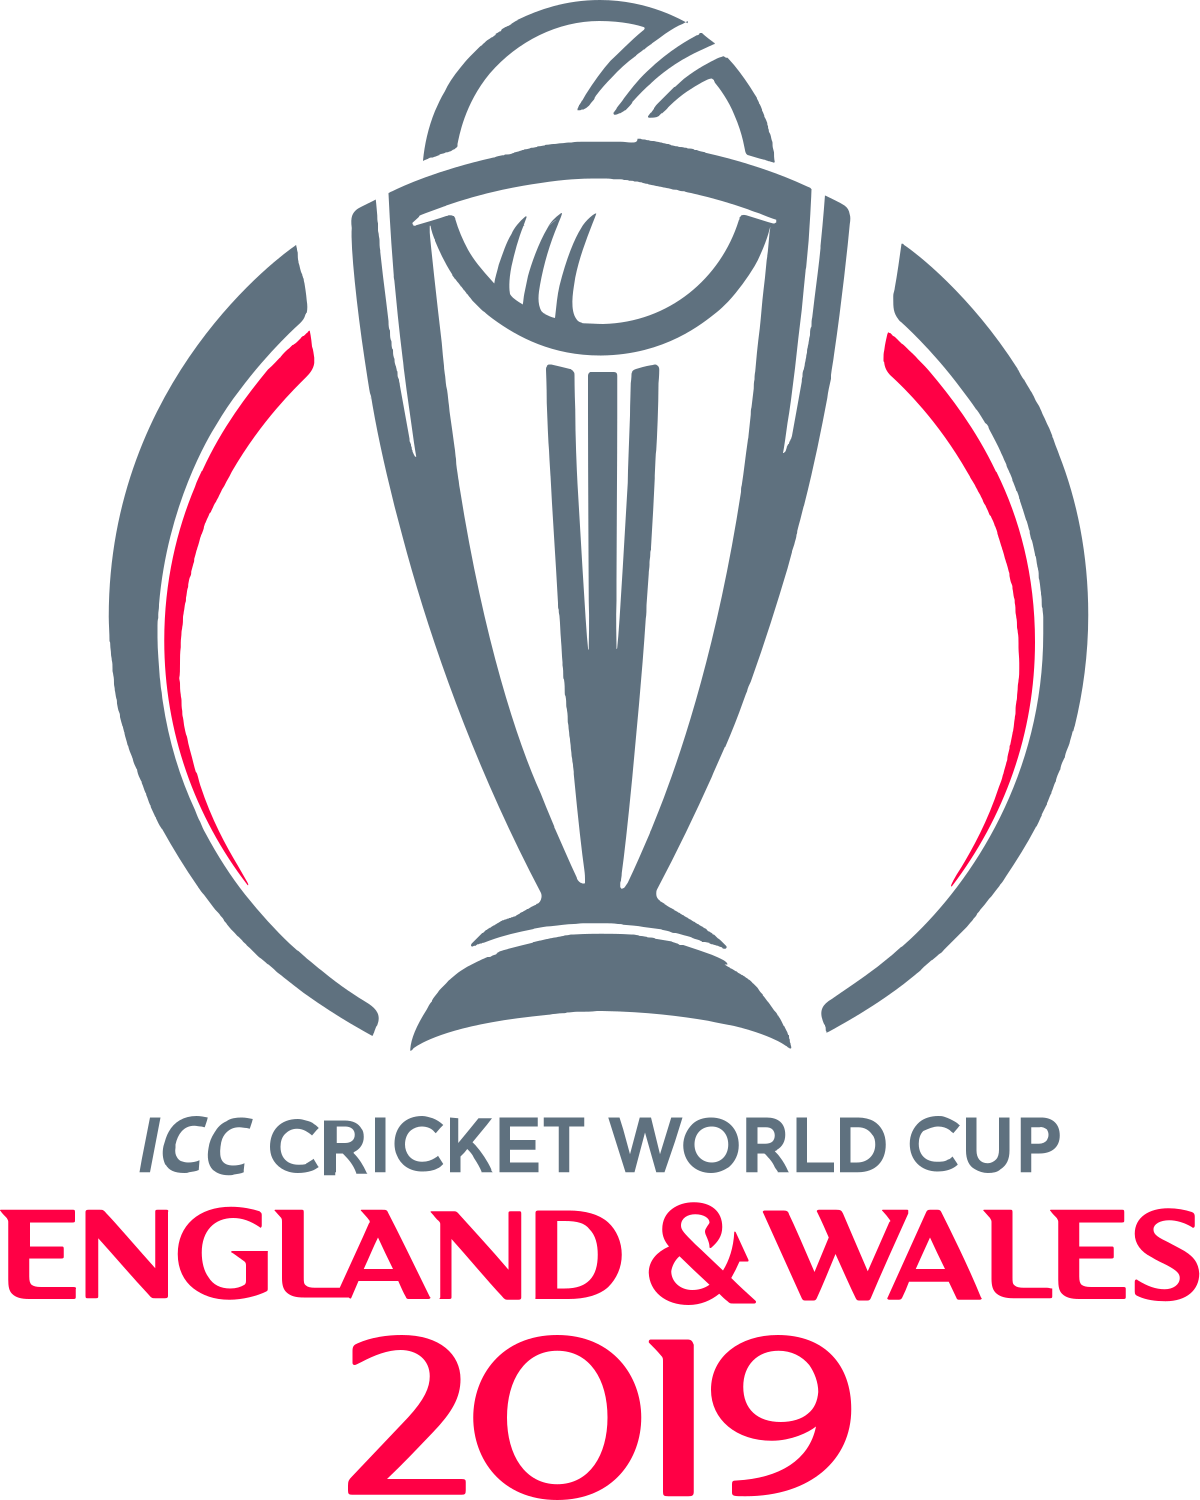 Pin On Cricket World Cup 2019